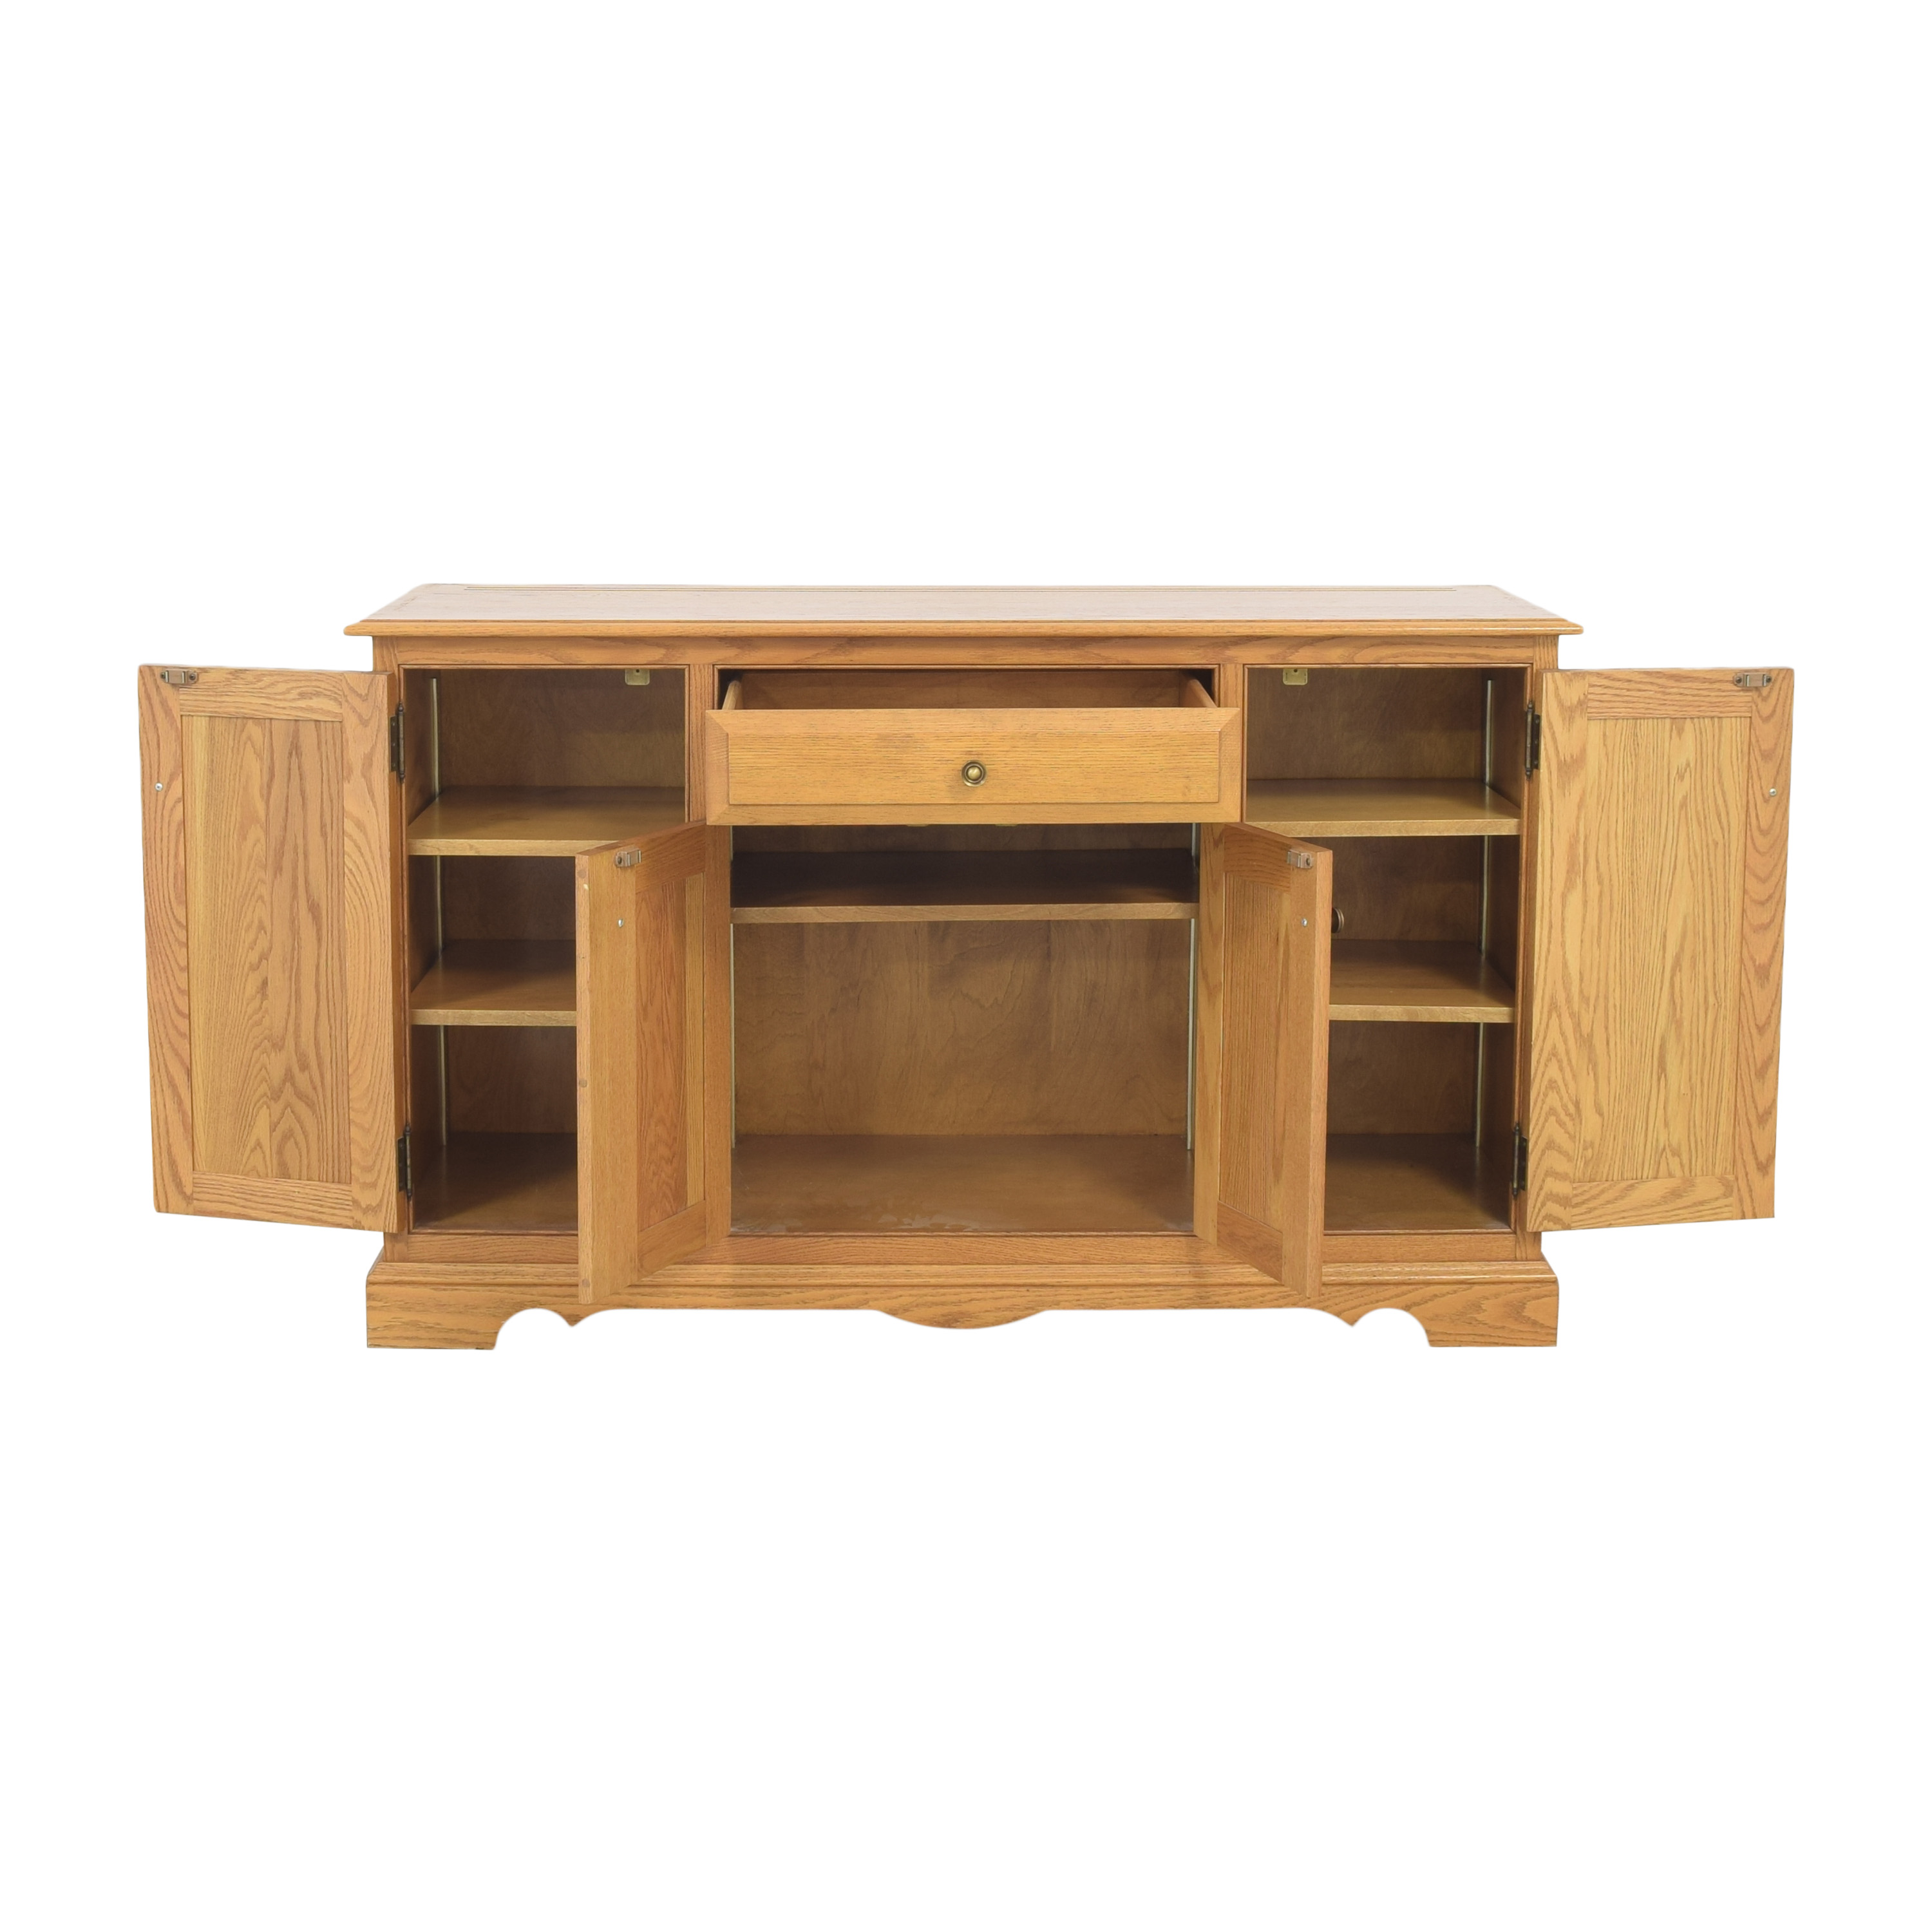 Quality Custom Kitchens Quality Custom Kitchens Sideboard second hand